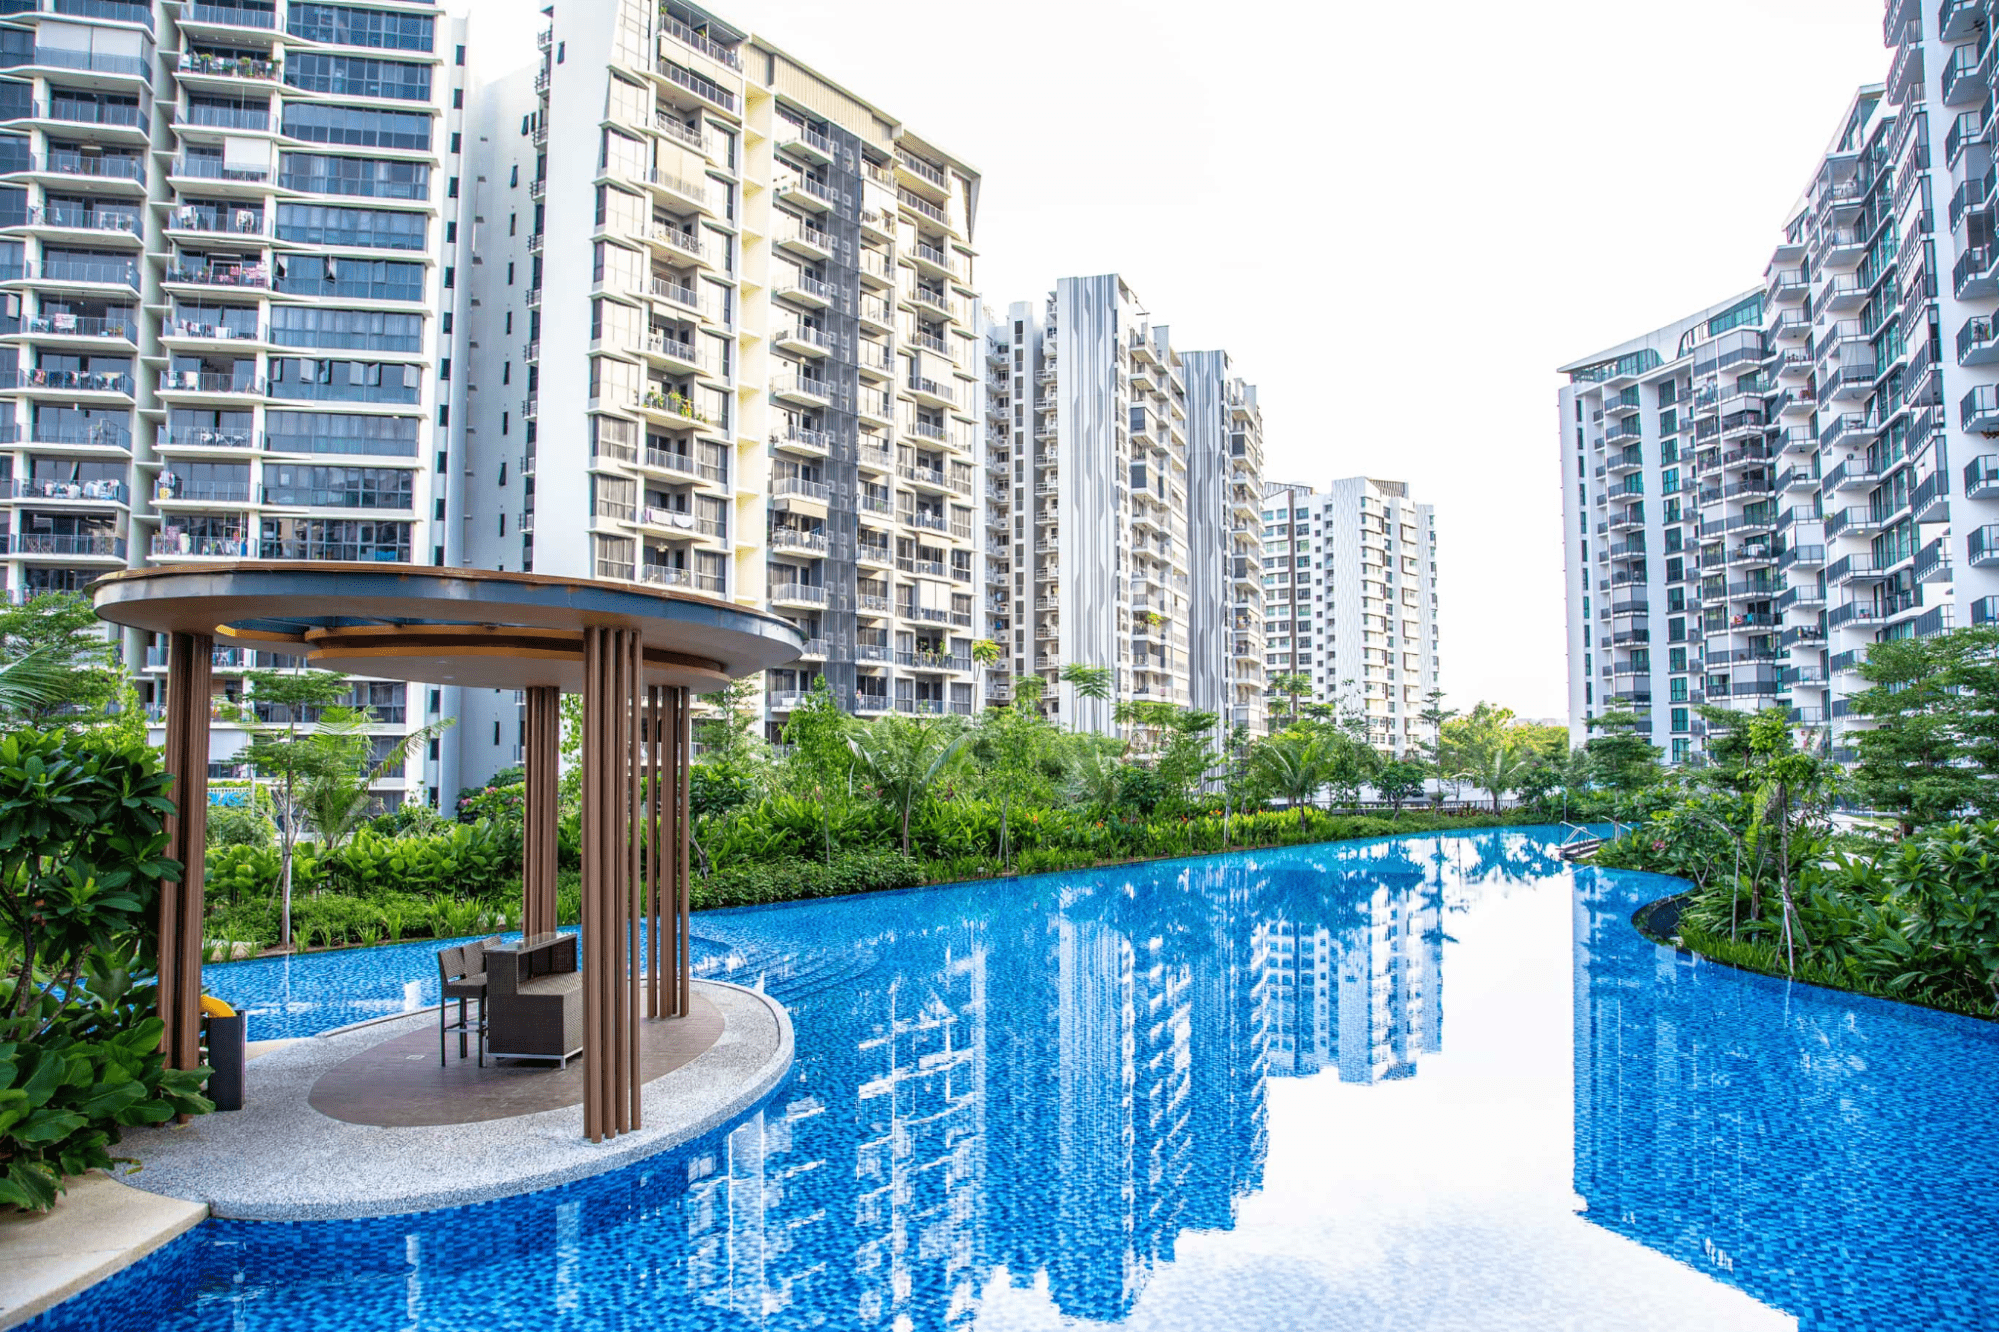 Best Condo Swimming Pools - Kingsford water bay